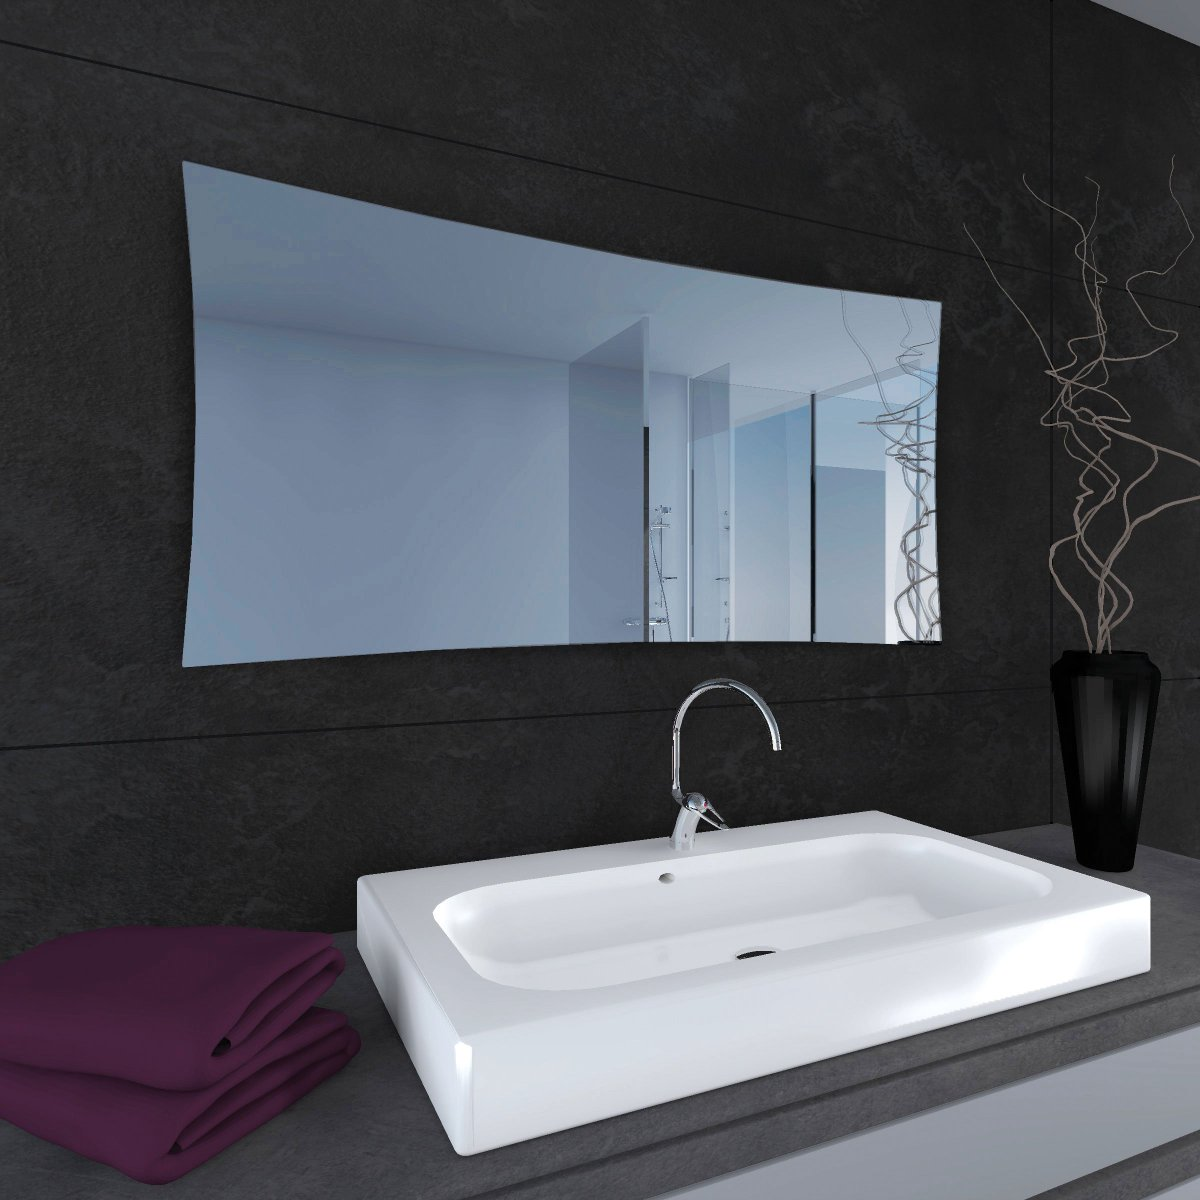 Downflow Bathroom Heater Bathroom Wall Heater Uk Rpx Range A Large Luxury Frameless Glass